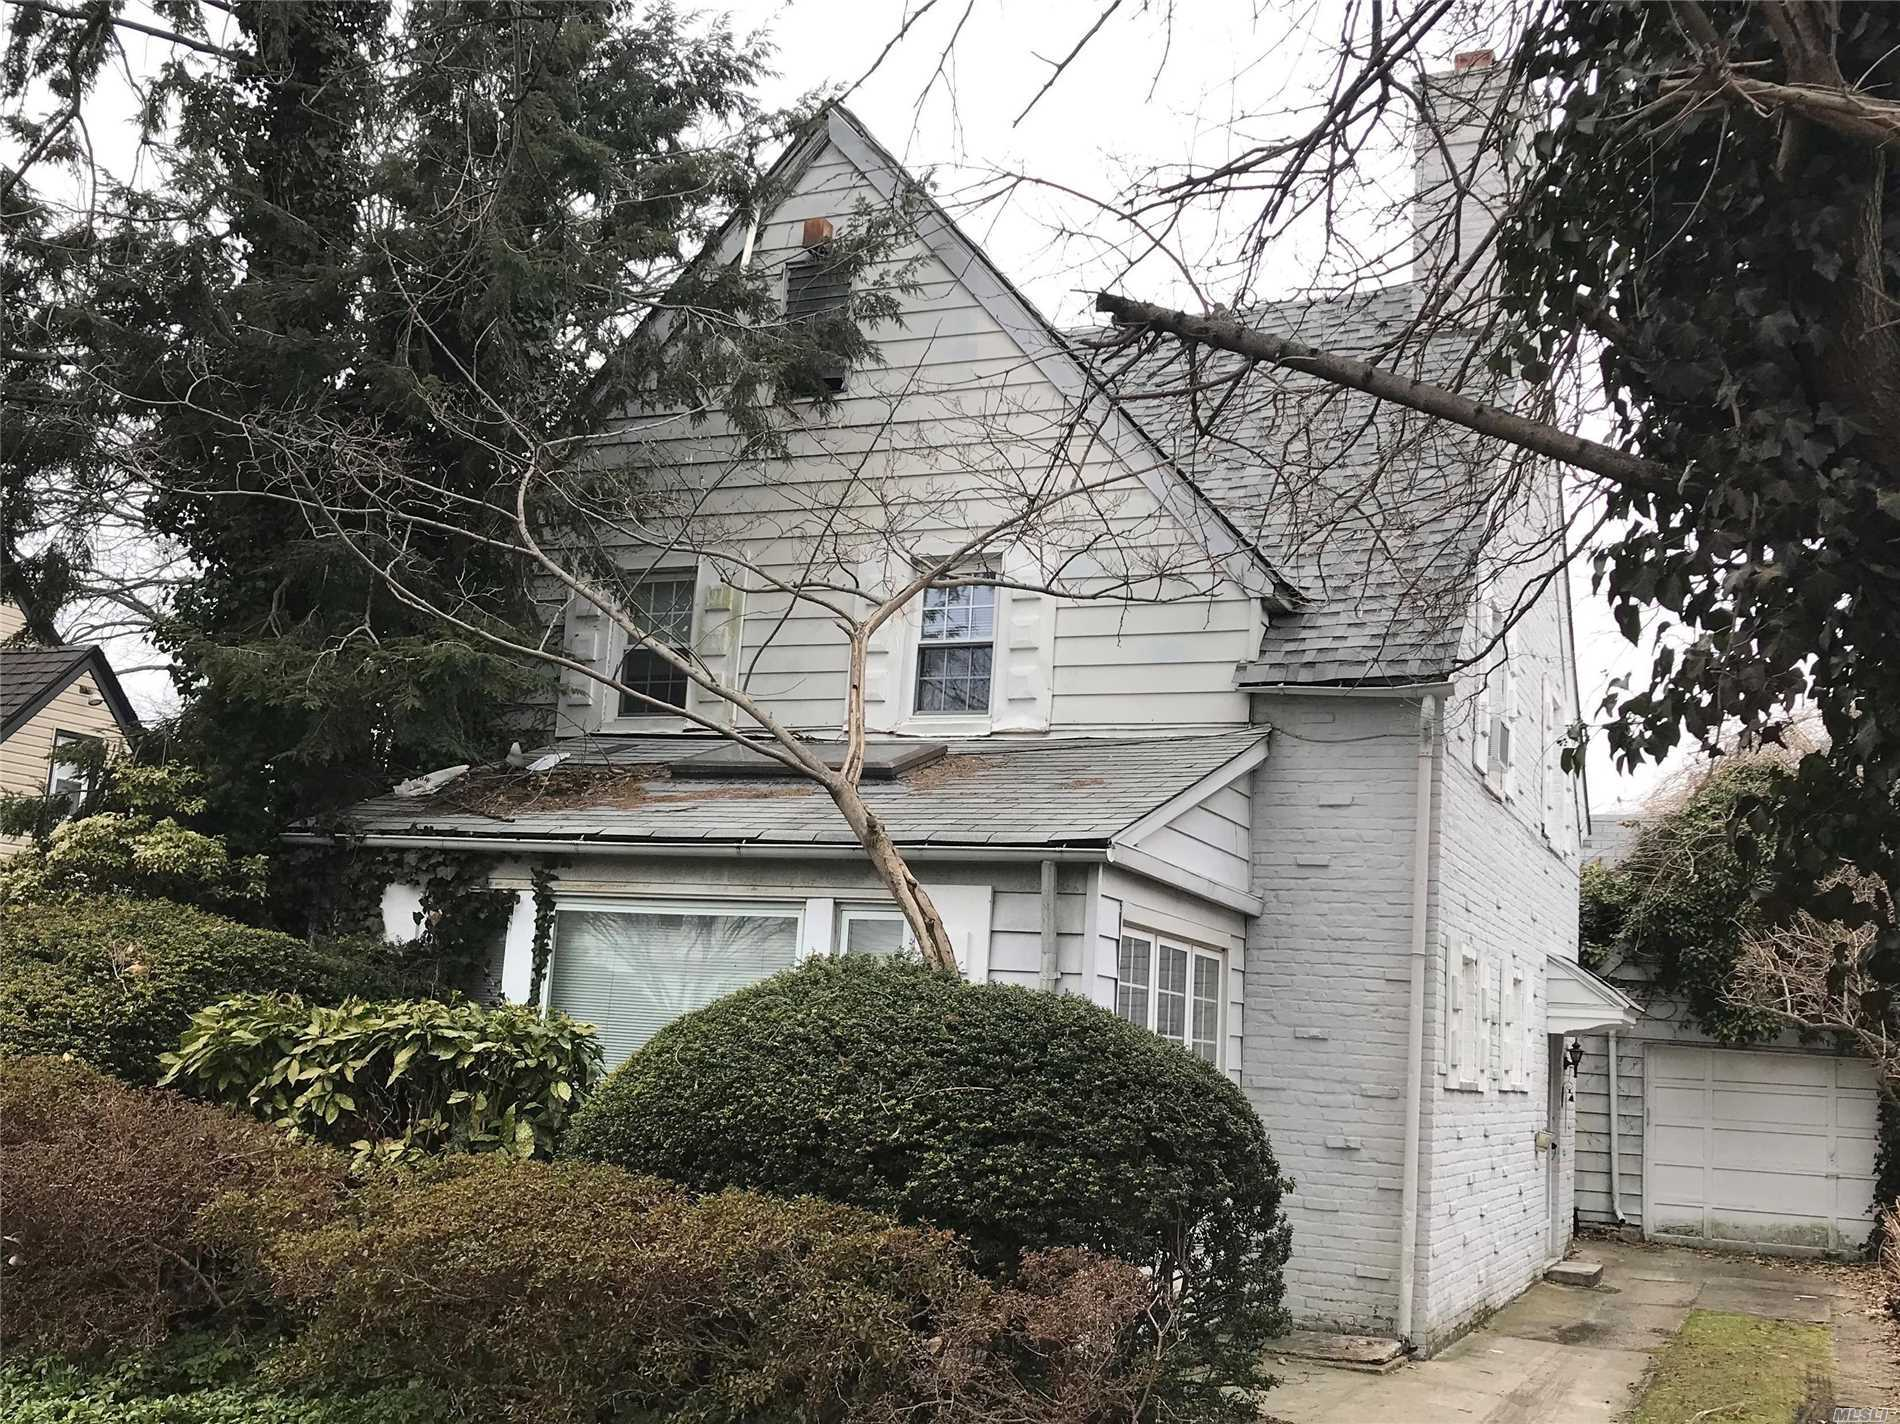 well kept home on quiet block of Cord Meyer, 50'x100' lot, 3 Bedroom, 2.55 Bath, Den, open porch, 1.5 bath on the first floor, Full finished basement,  attic, garage, backyard with the lush landscaping that reflects loving care, close to shopping and transportation, PS #196